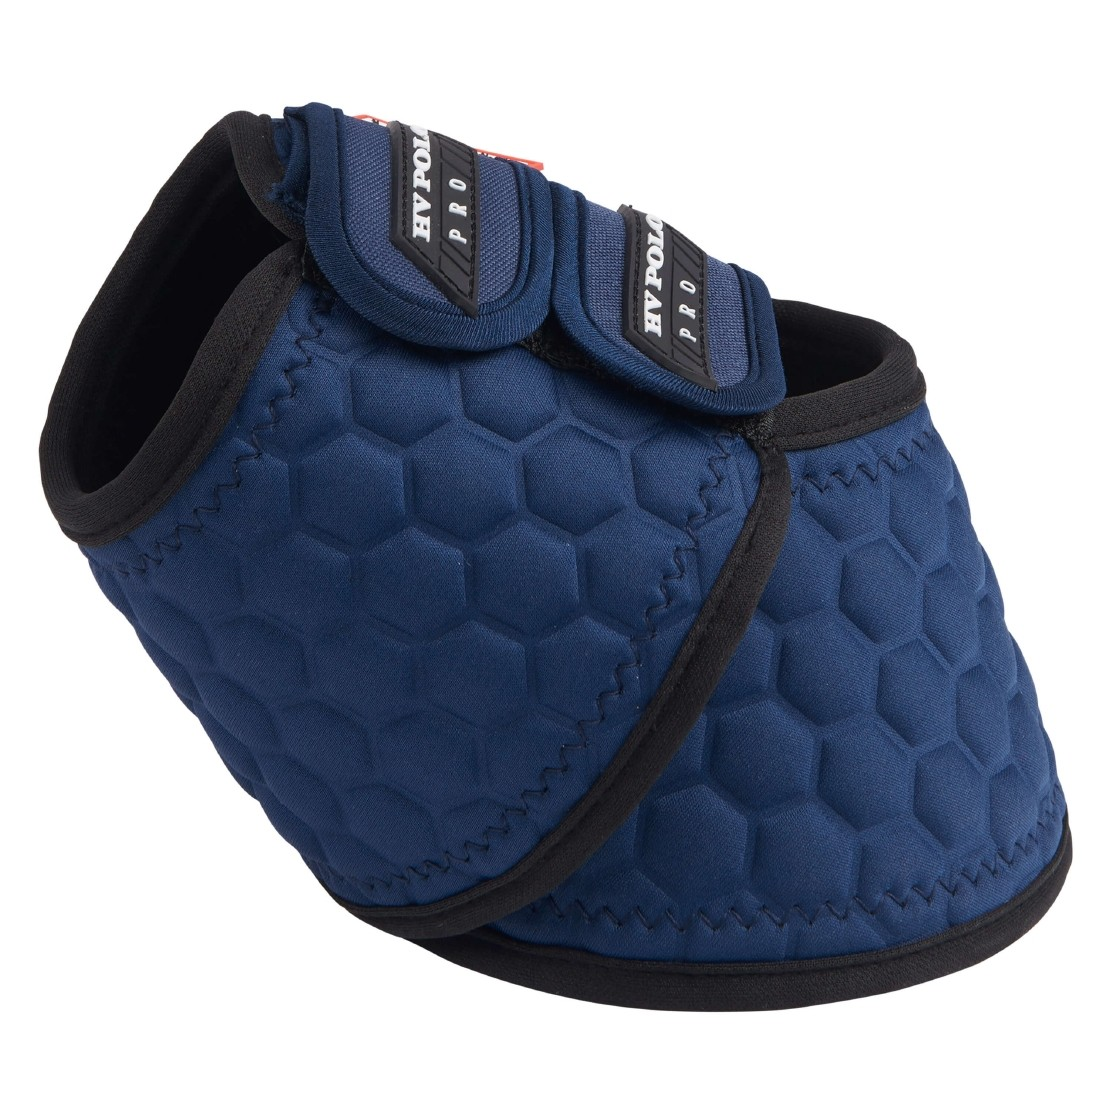 Hufglocken Rubels WB Navy